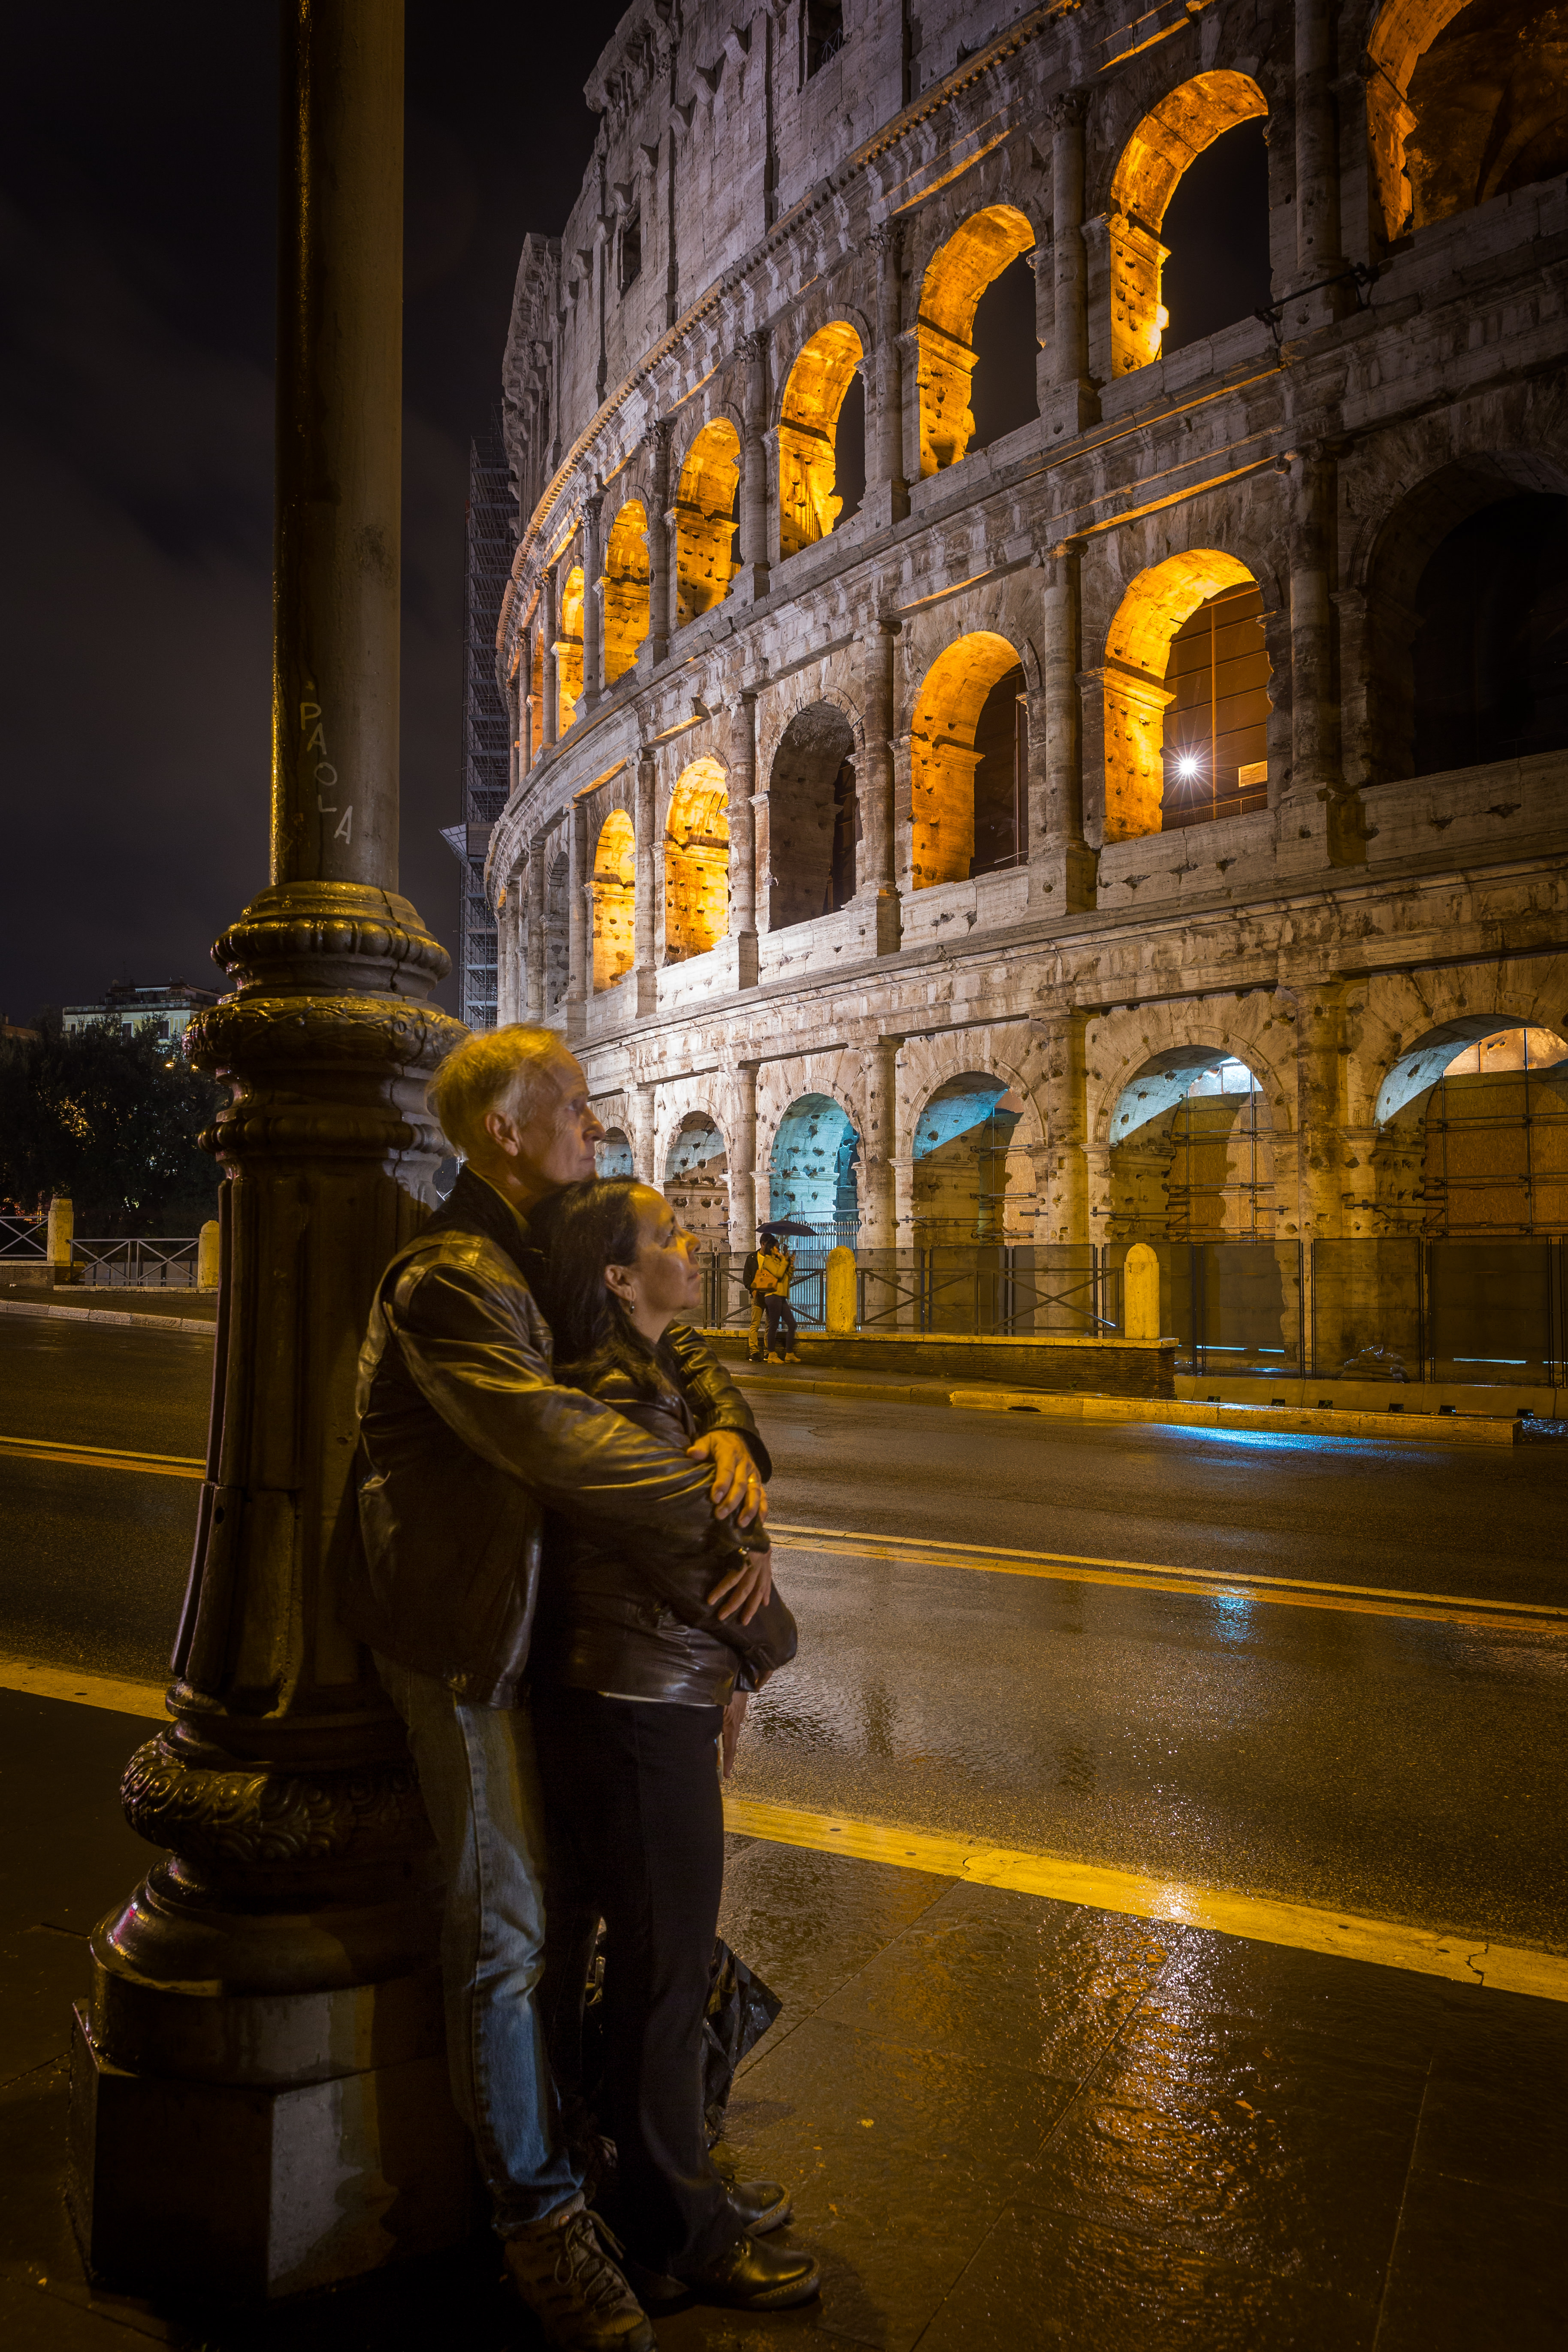 Coliseum, Rome, Italy. It was raining but so what? We got lucky here because headlights from a bus lit our faces while we cuddled in the cold.